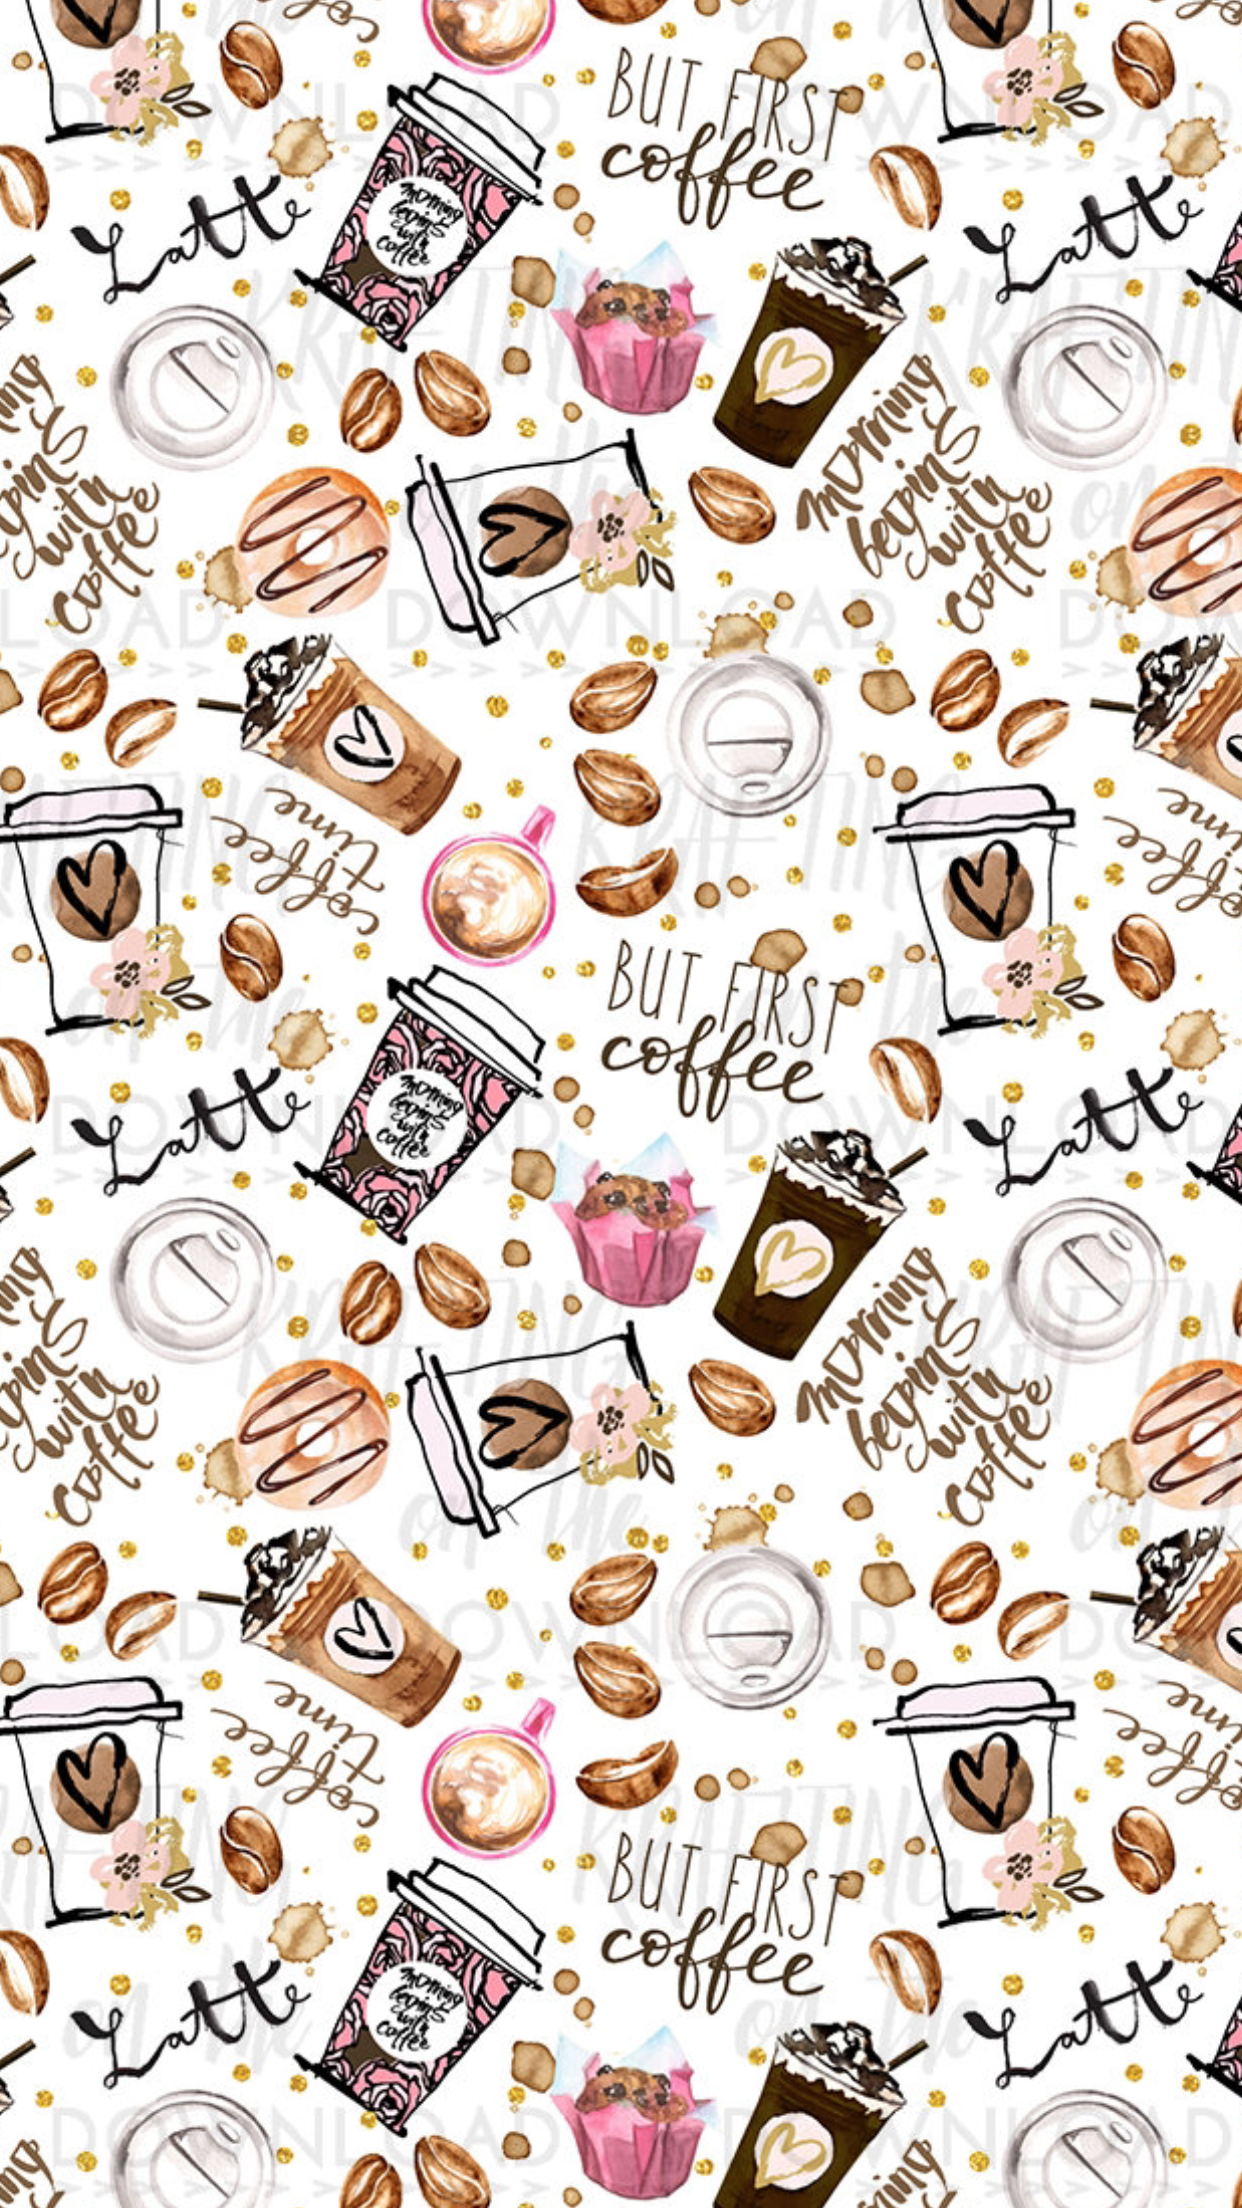 What Are the Best Coffee Brands You Can Buy Wallpaper